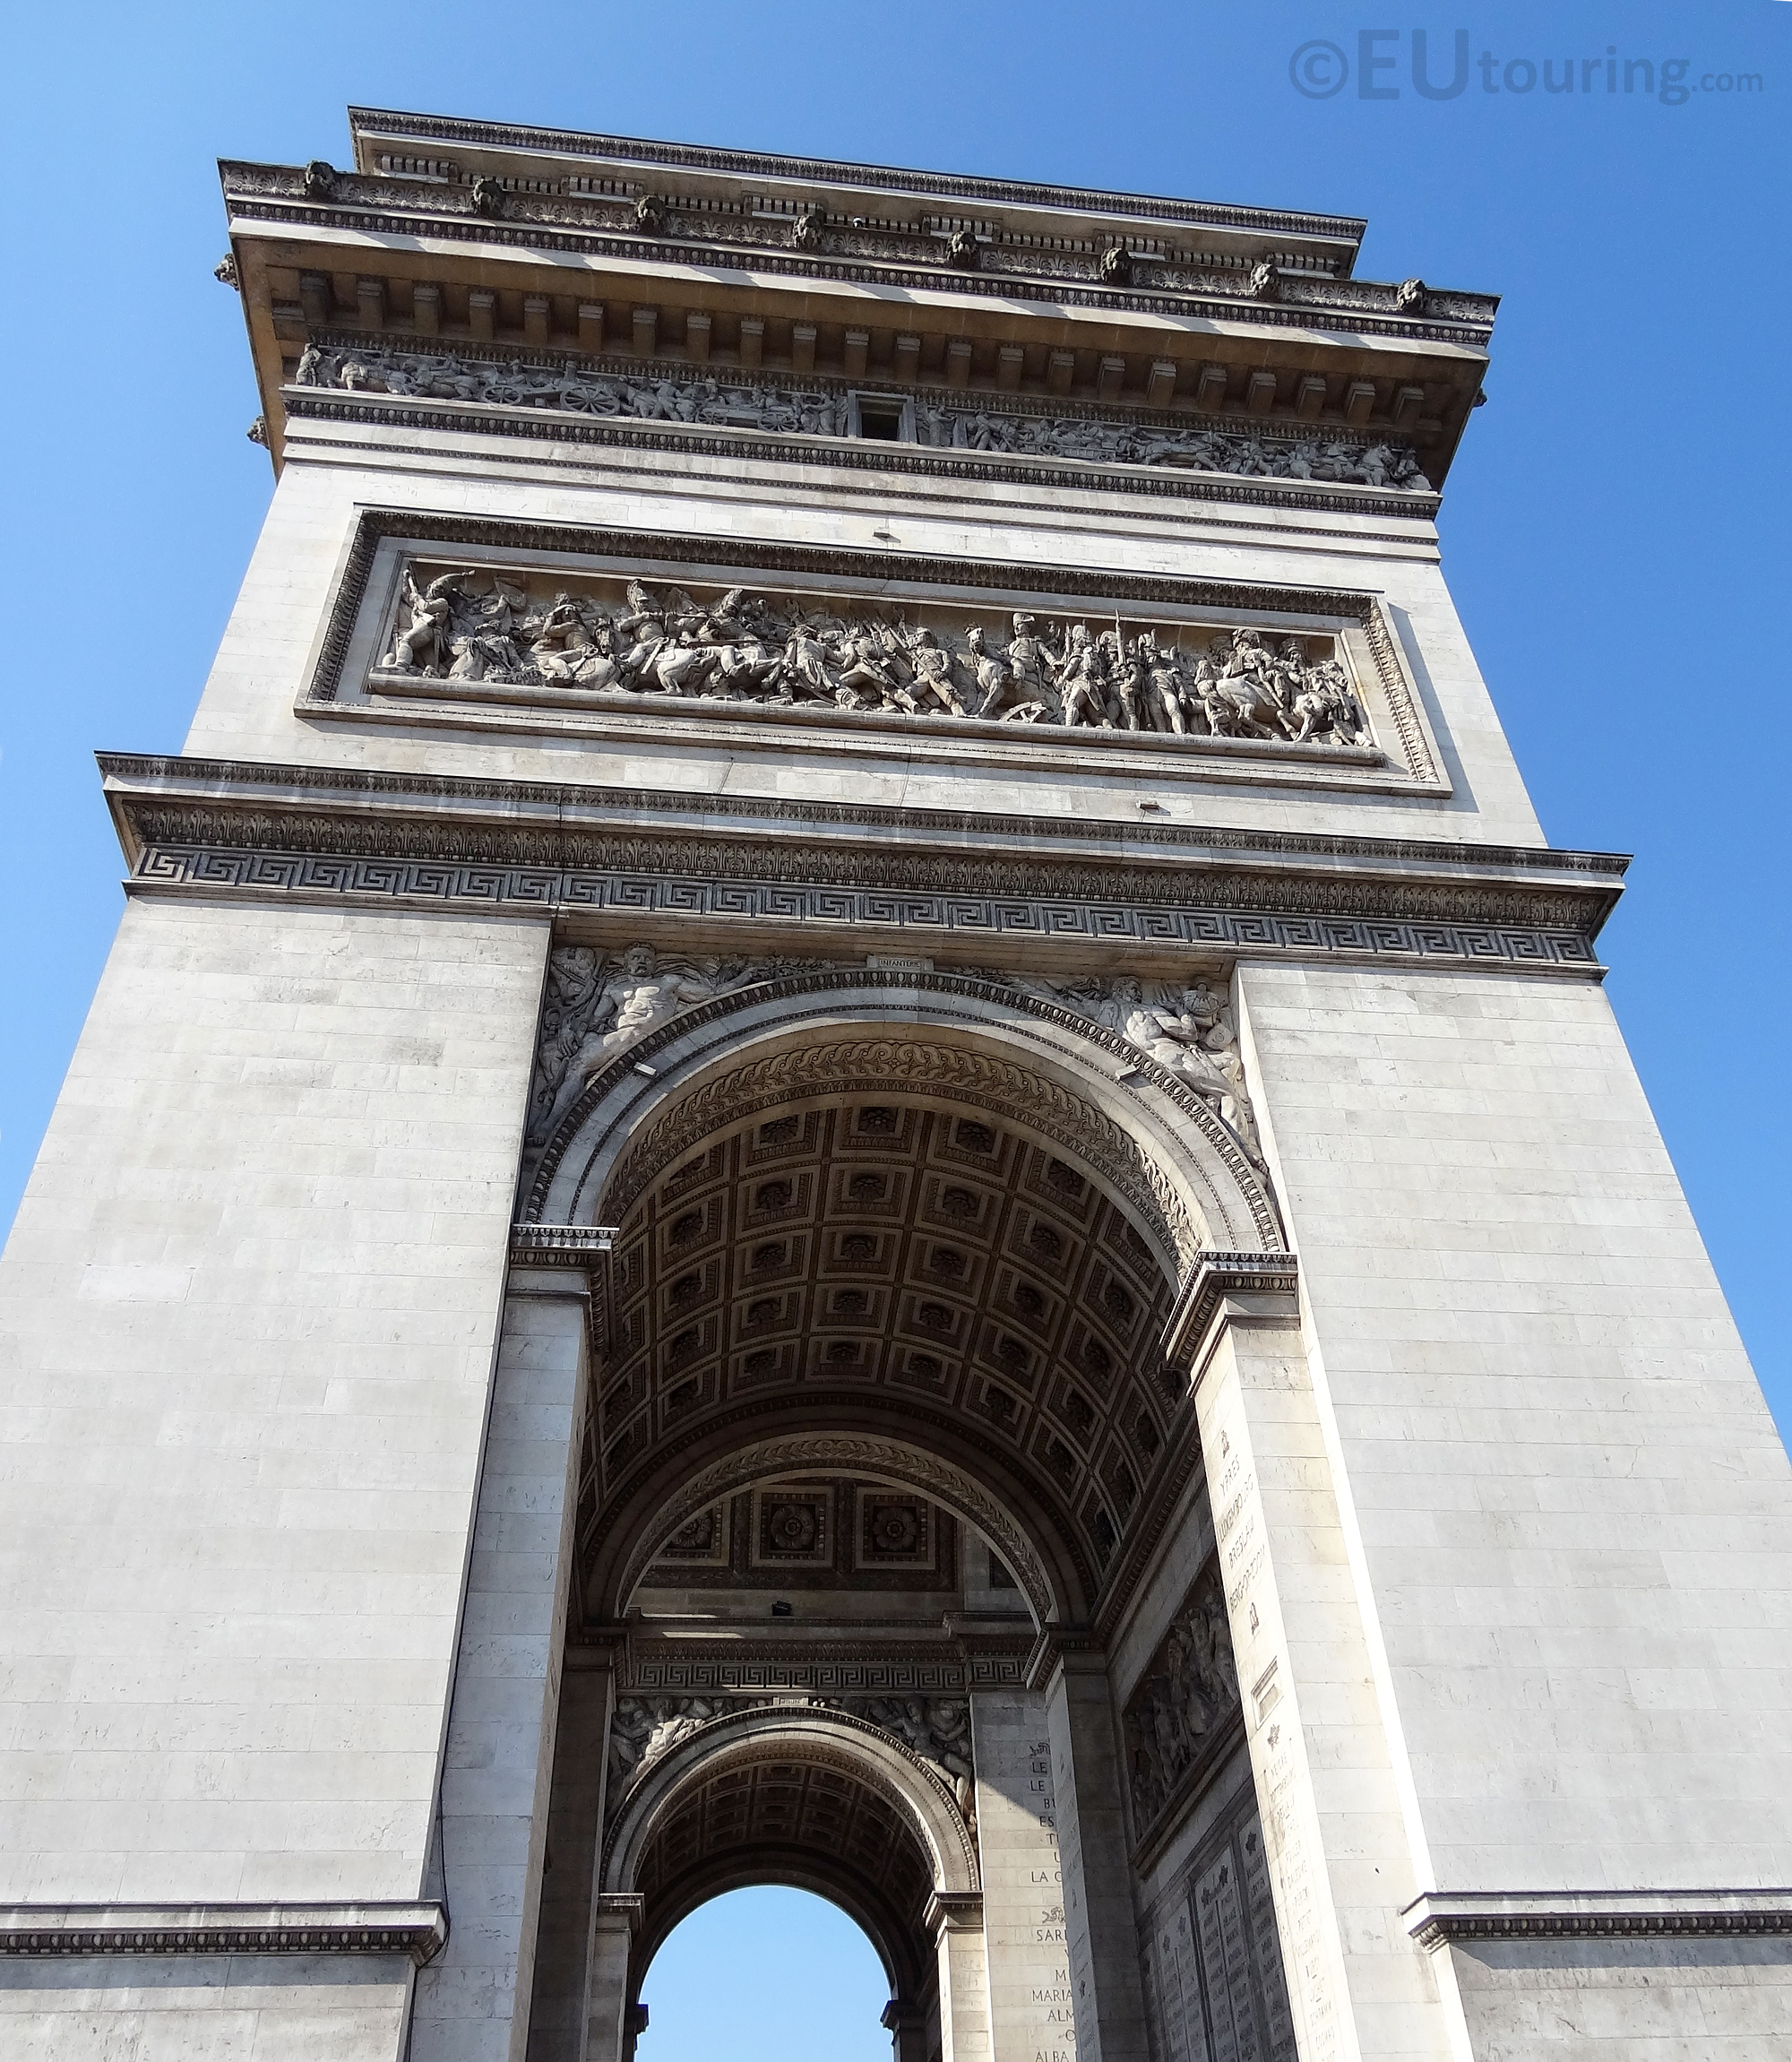 Side and details of the Arc de Triomphe